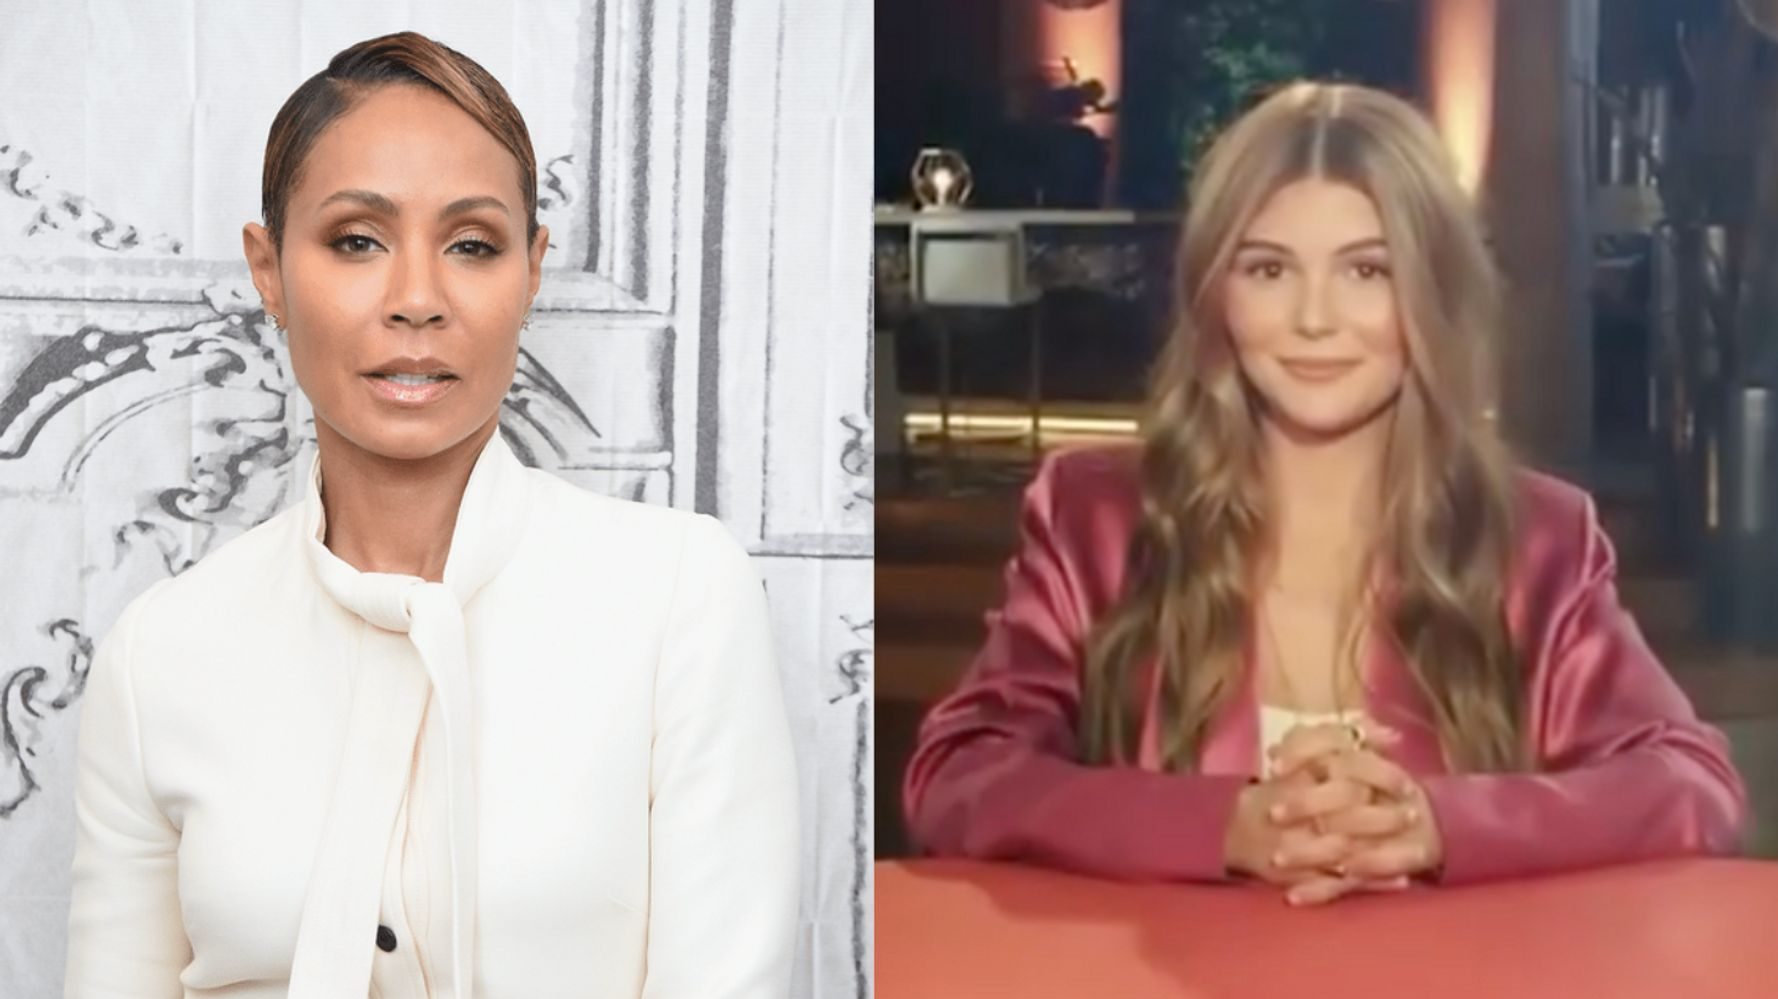 Jada Pinkett Smith Is Bringing Olivia Jade On 'Red Table Talk' To Break Her Silence